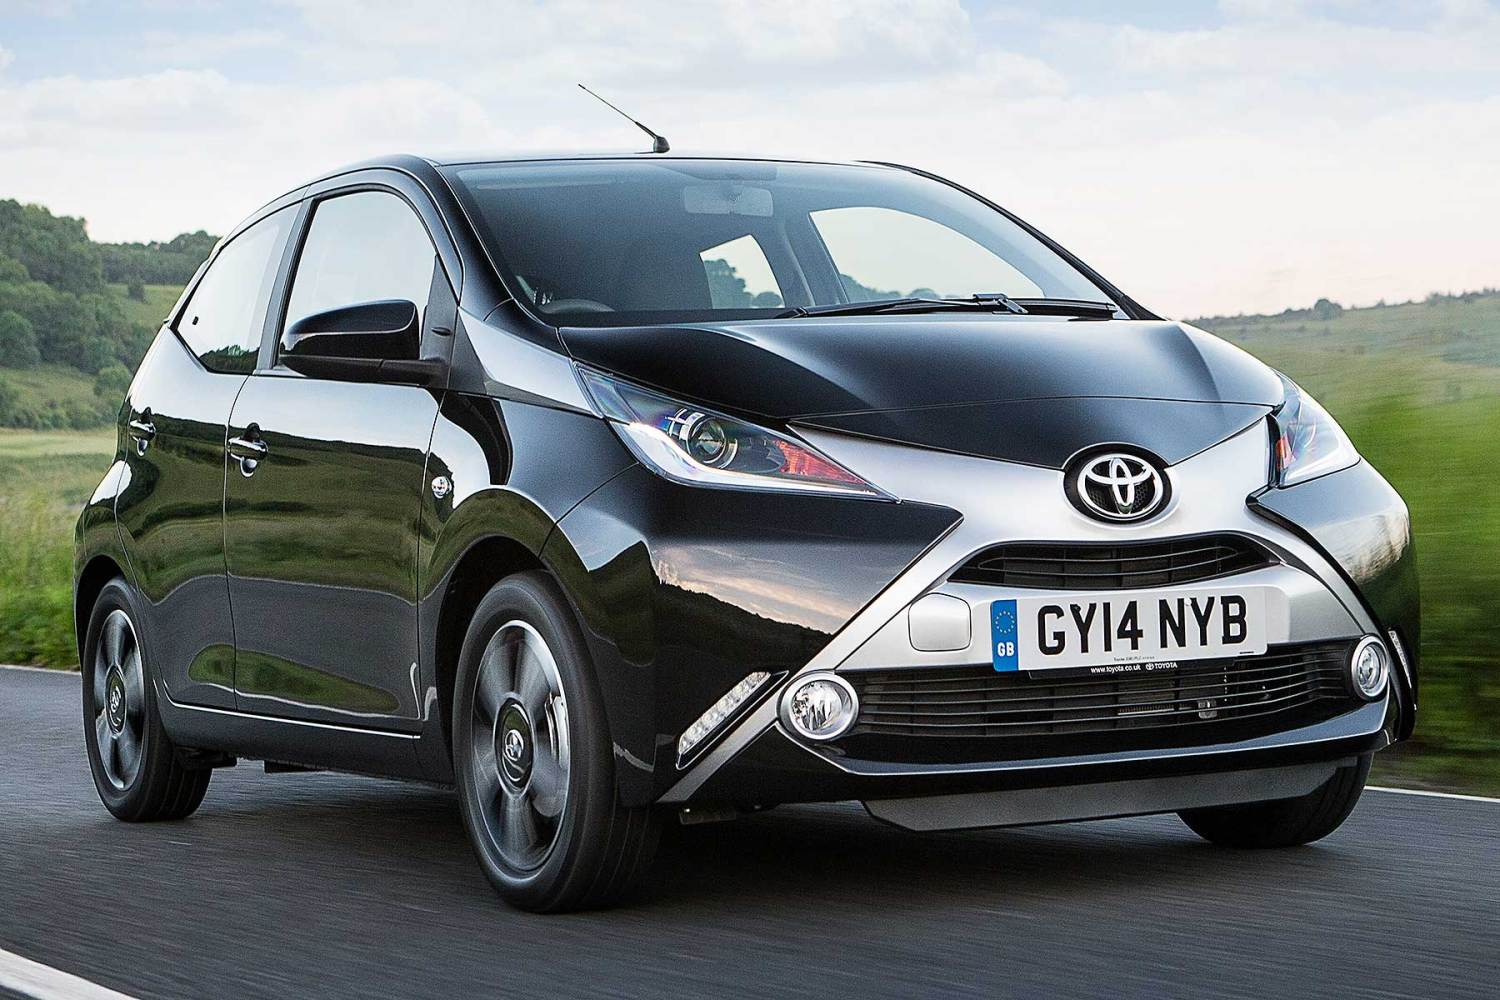 The cheapest cars to insure for 17-18 year olds: Toyota Aygo